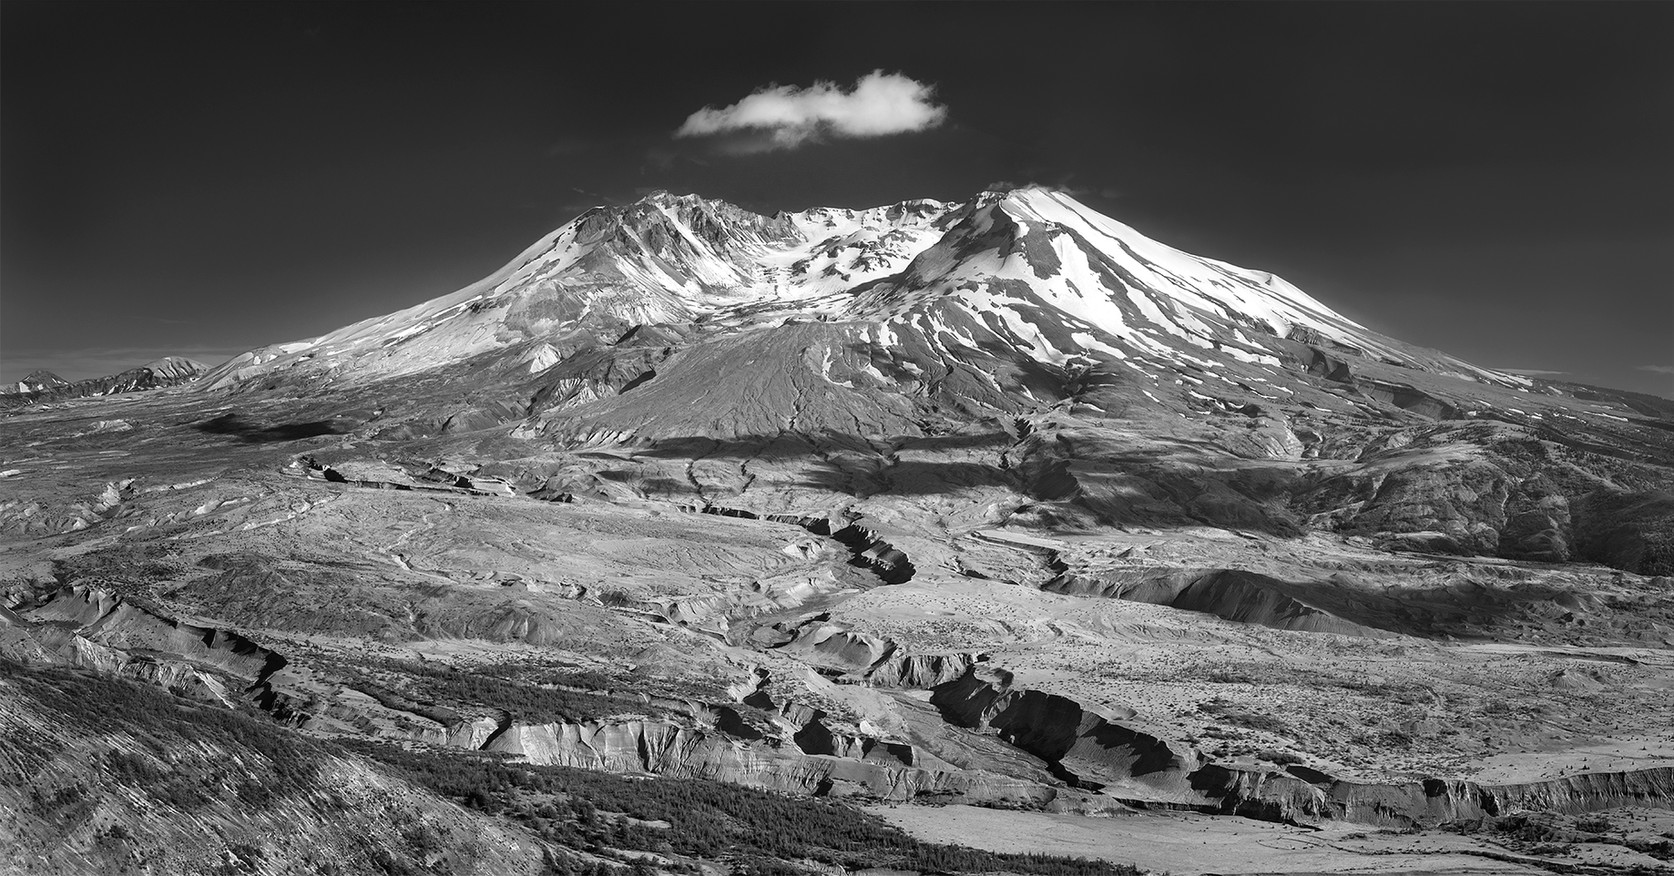 Mt. Saint Helens